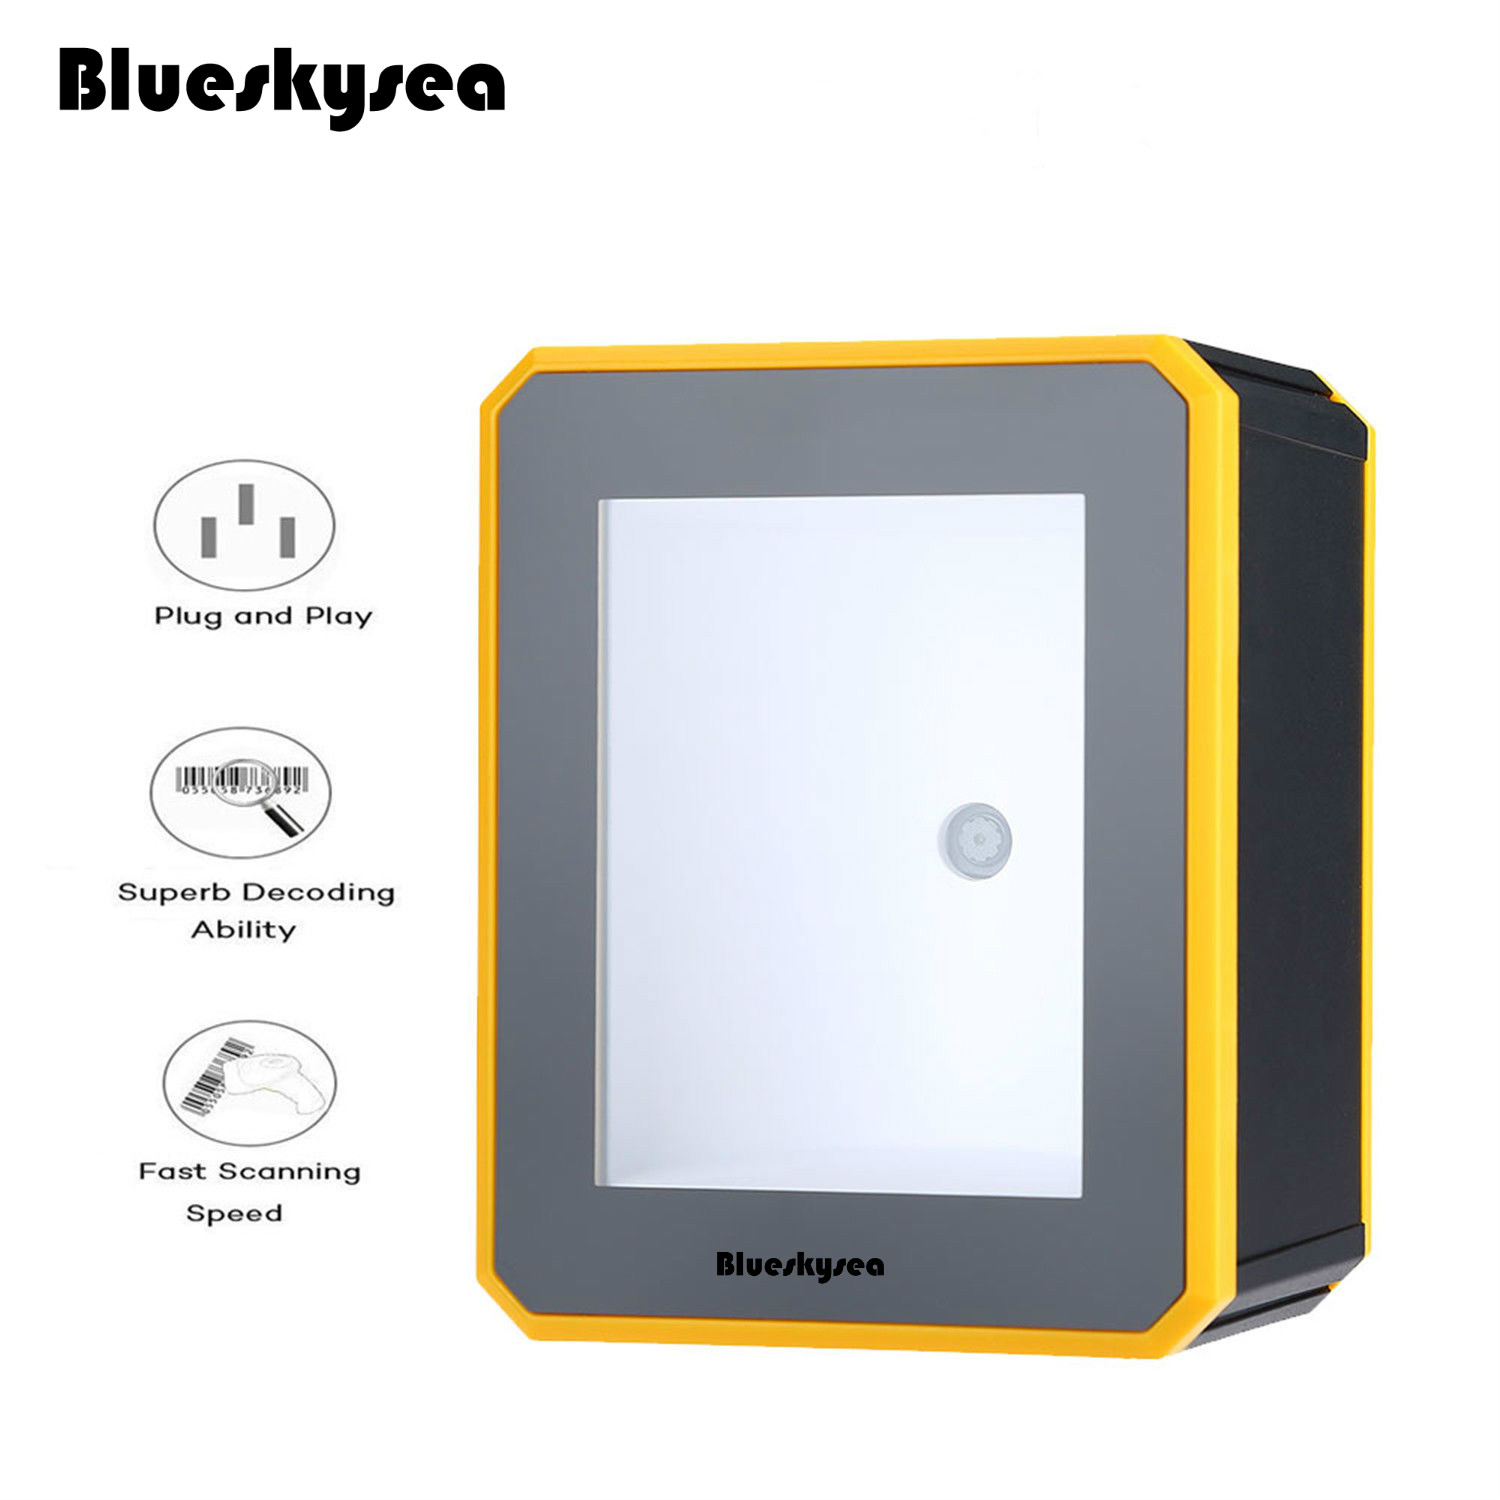 Blueskysea YK-MP2600 1D/2D Platform Barcode Scanner USB Wired Desktop 2D QR Code Reader Omnidirectional 2D QR PDF417 Scanner desktop omnidirectional 1d 2d ccd image laser barcode scanner for supermarket usb pos bar code reader auto scan 2d qr code